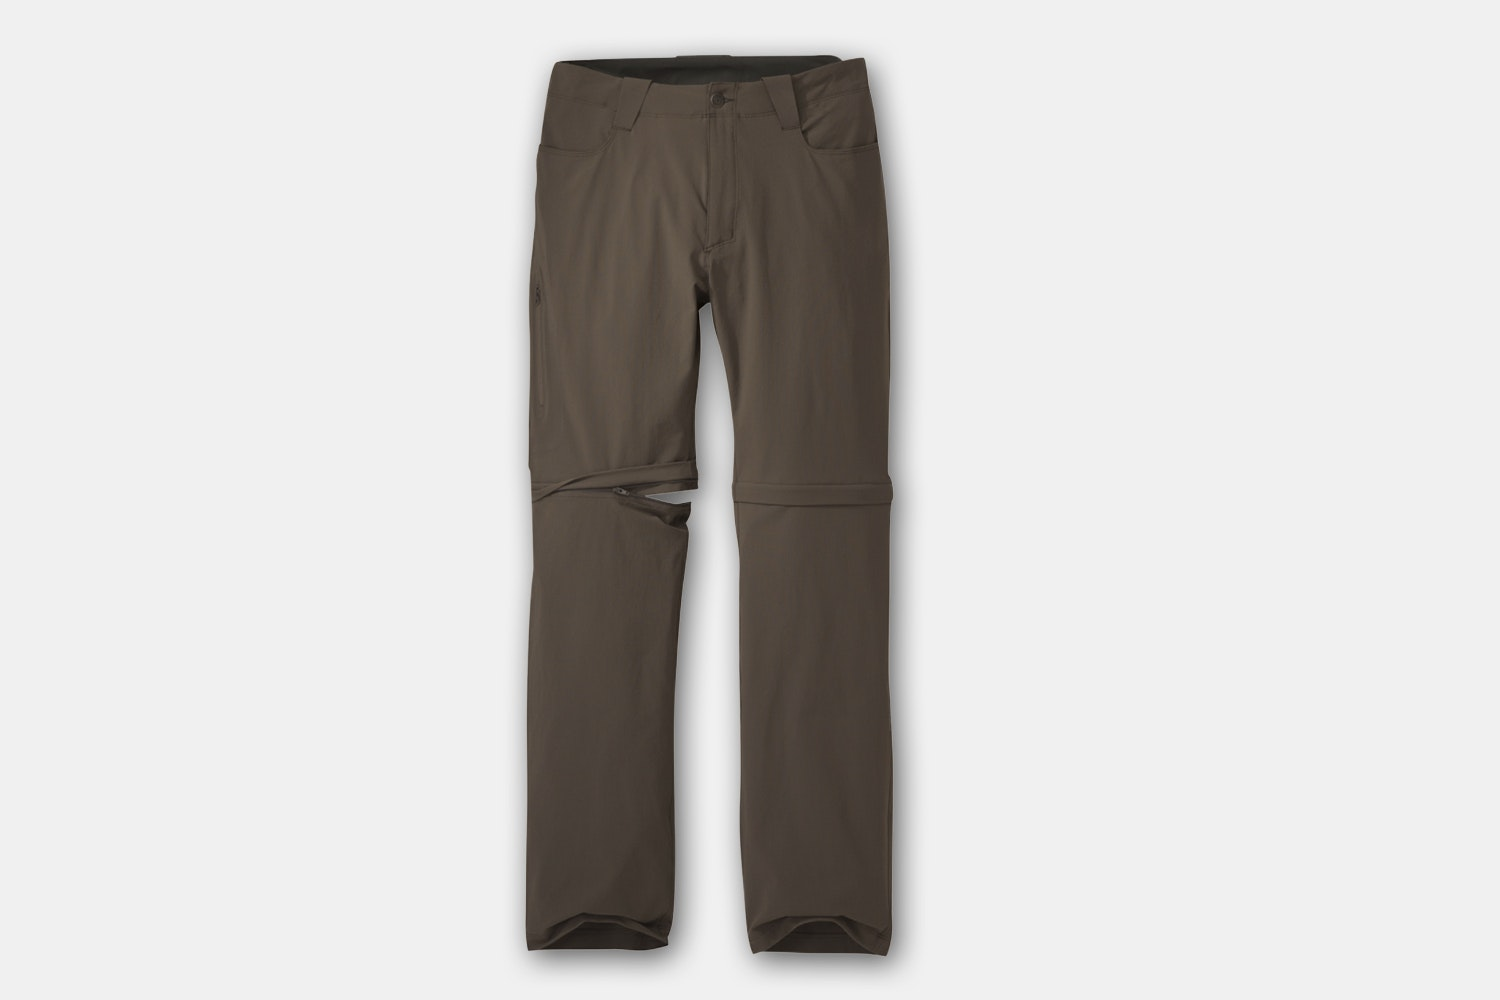 Men's – Convertible Pants - Mushroom